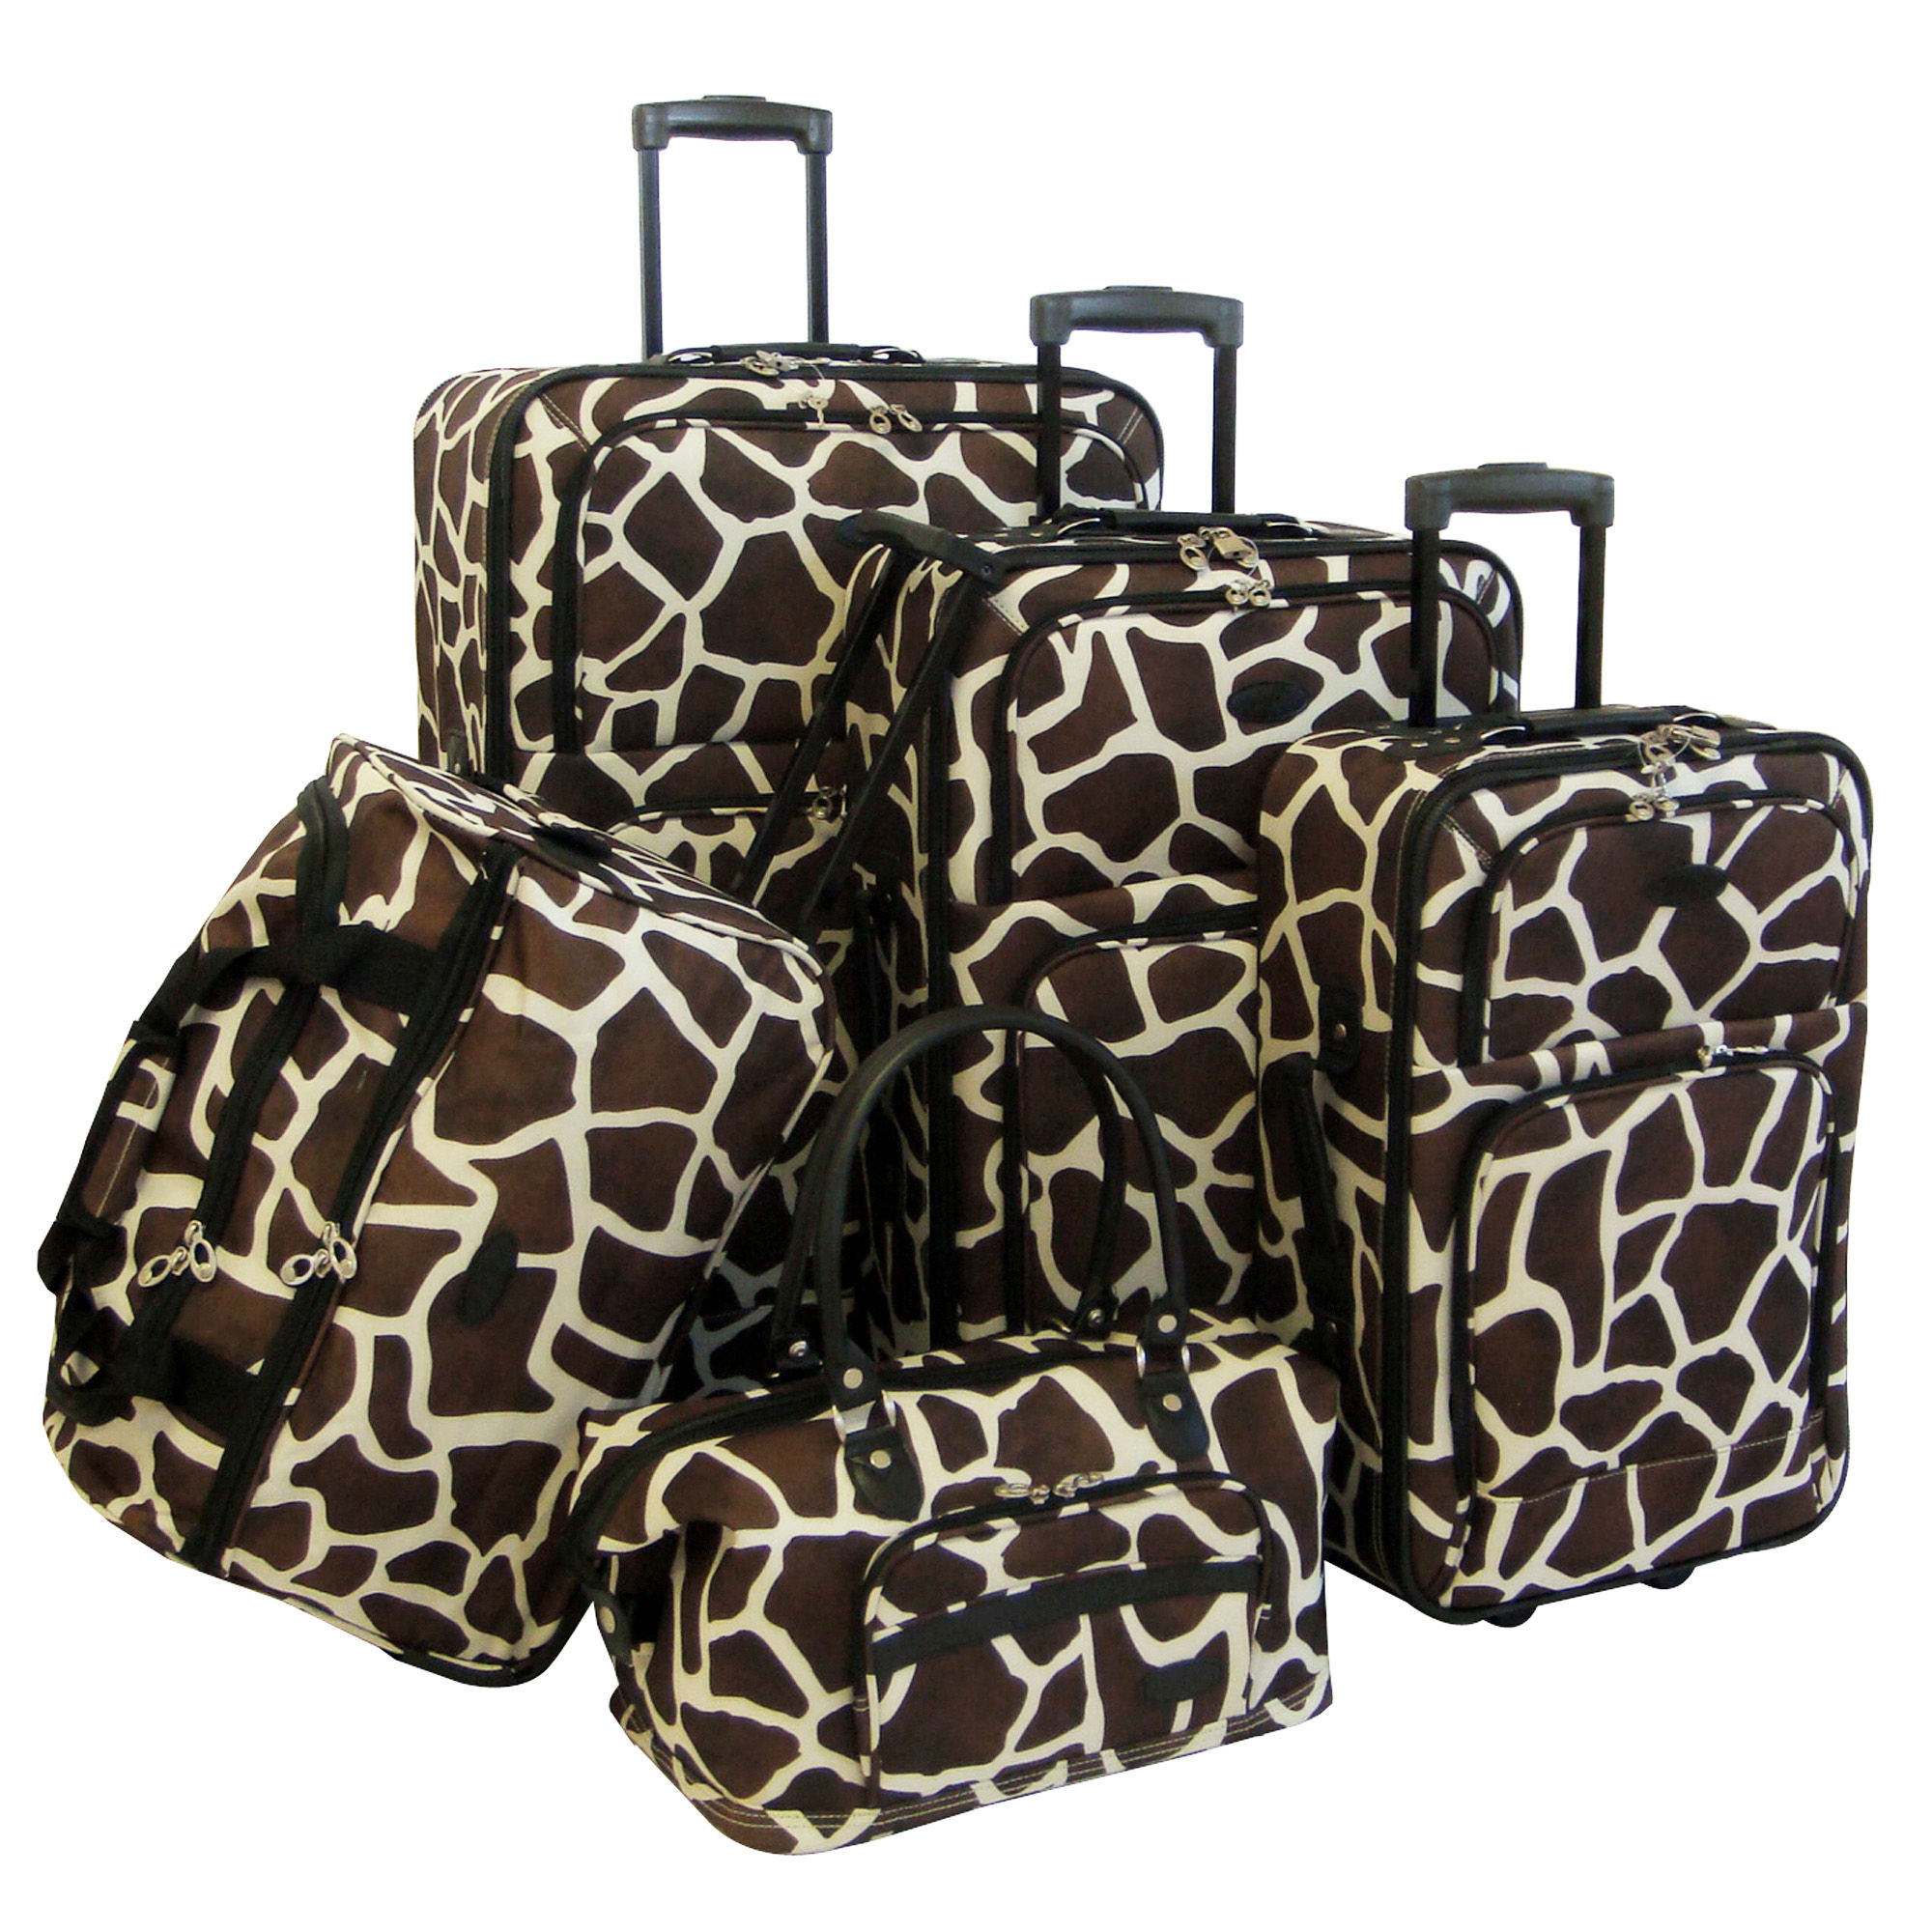 American Flyer Brown Giraffe Animal Print 5 Piece Luggage Set